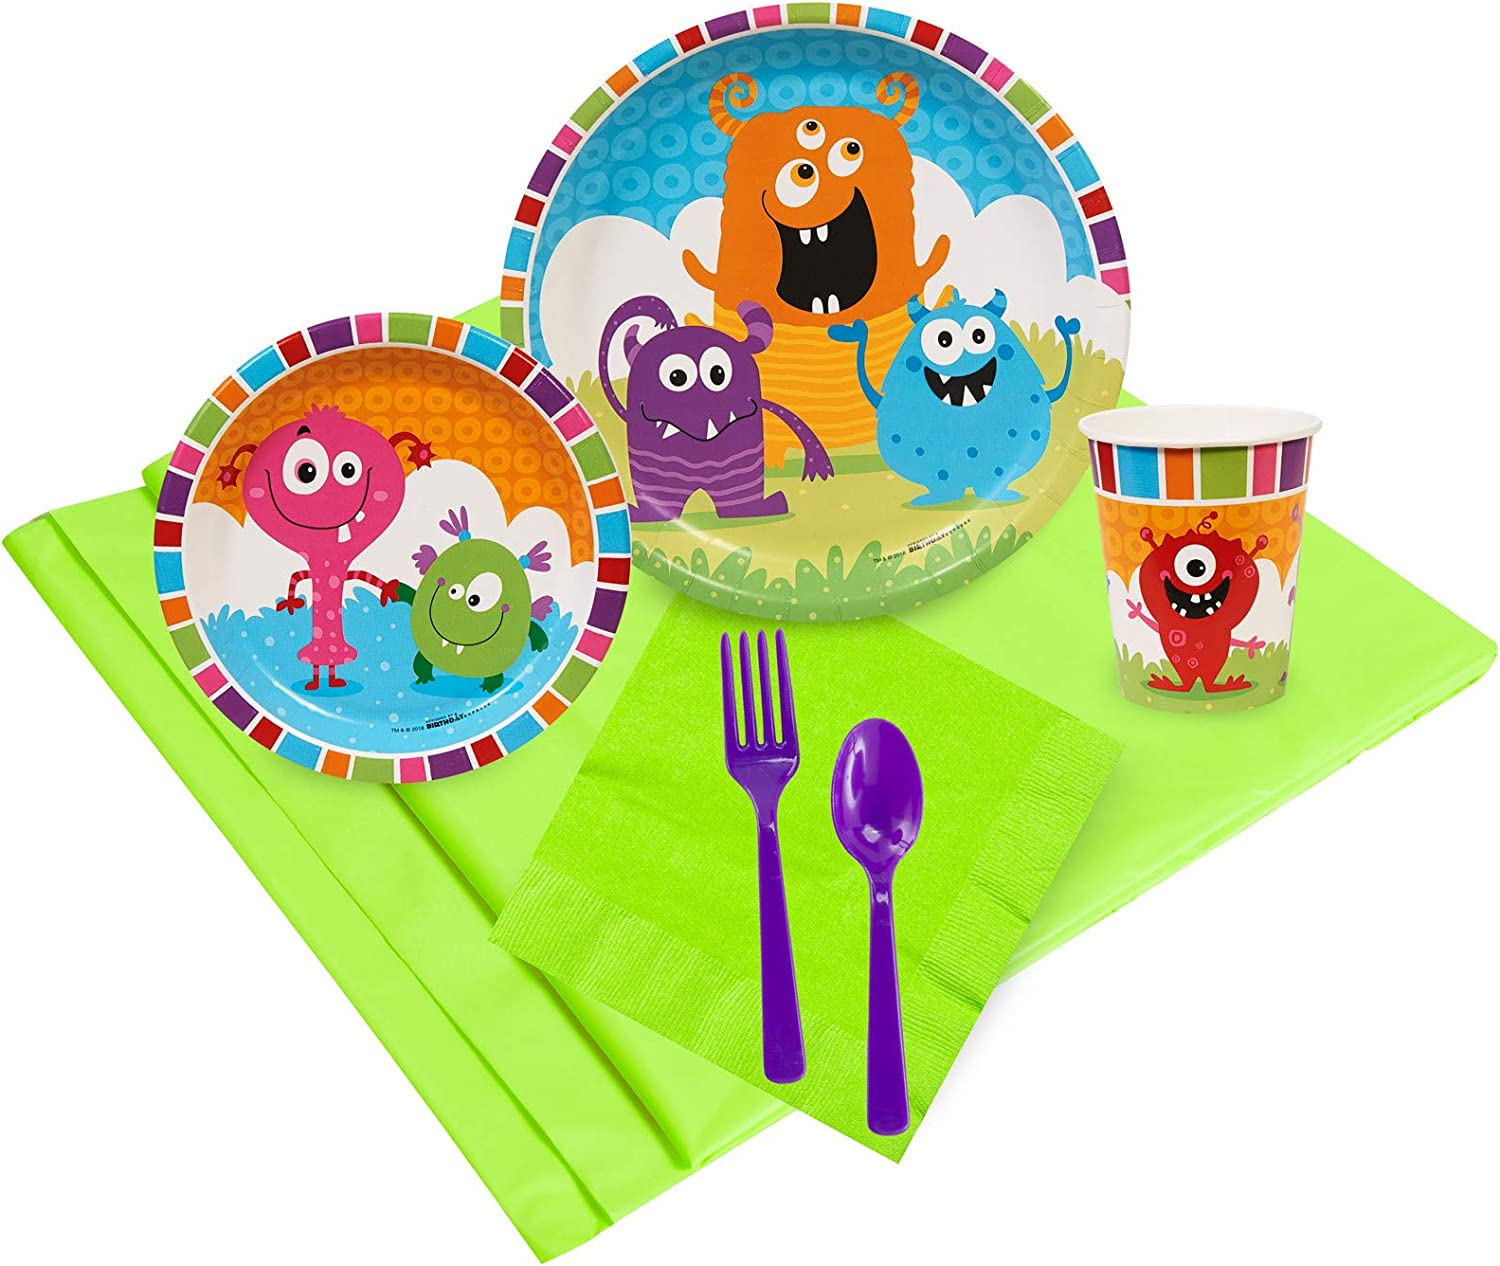 Aliens and Monsters Coordinating Party Supplies by Birthday Express